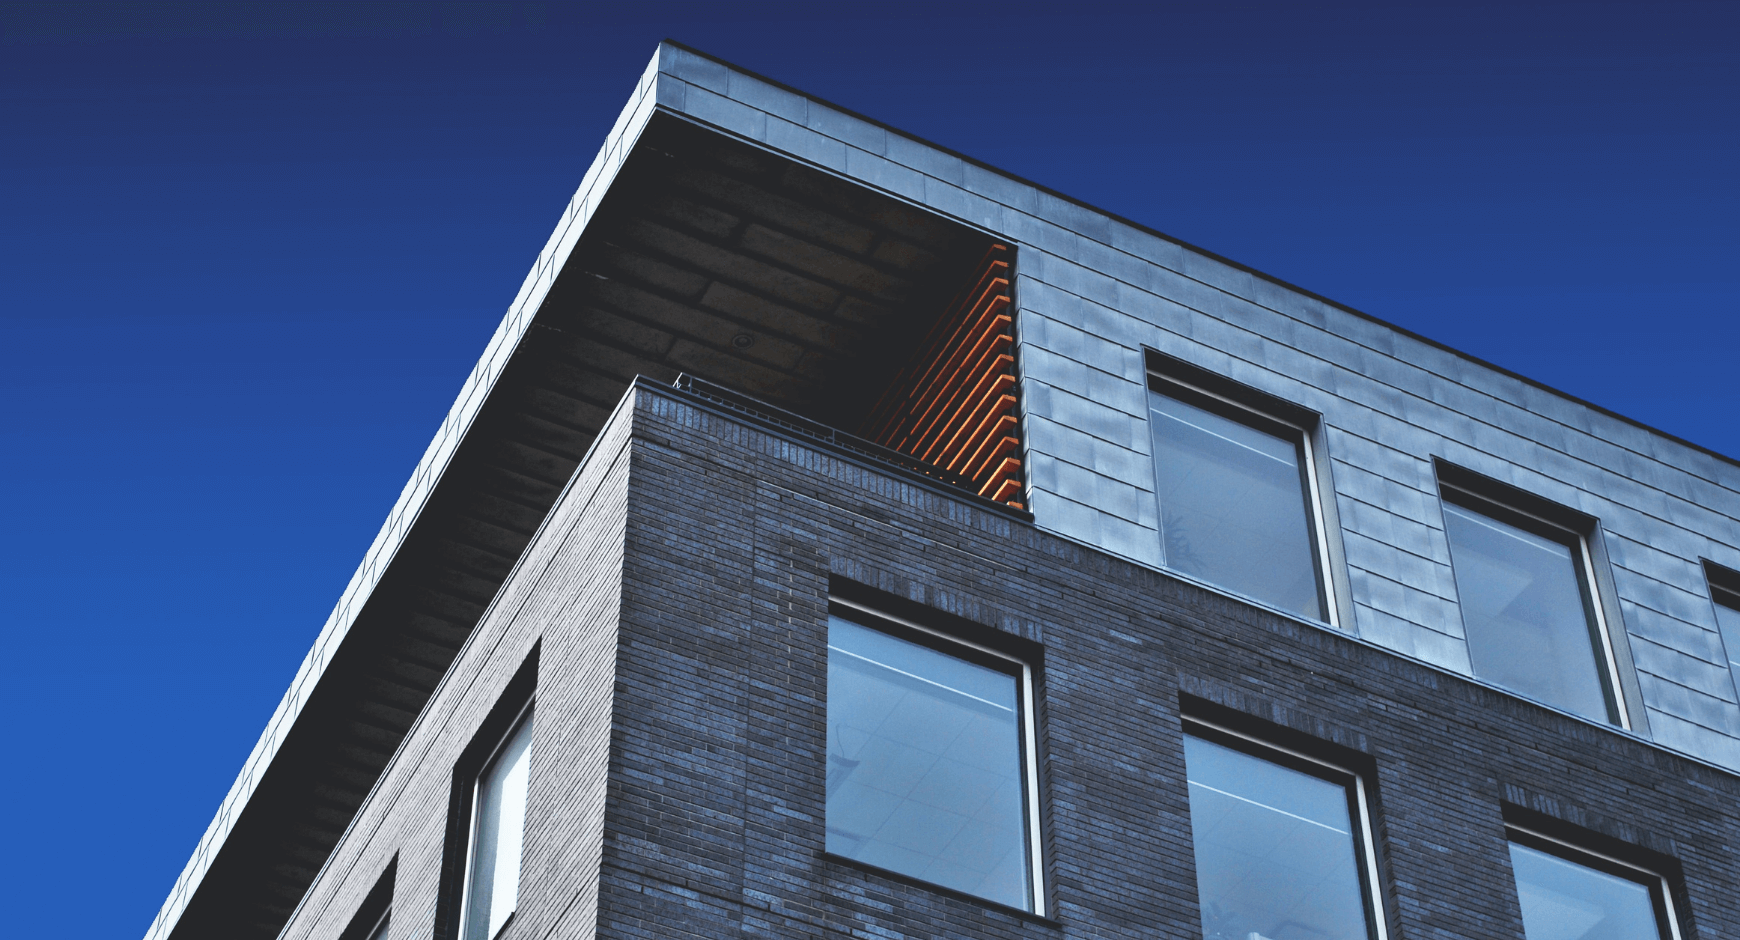 Image of a building with simple window trim